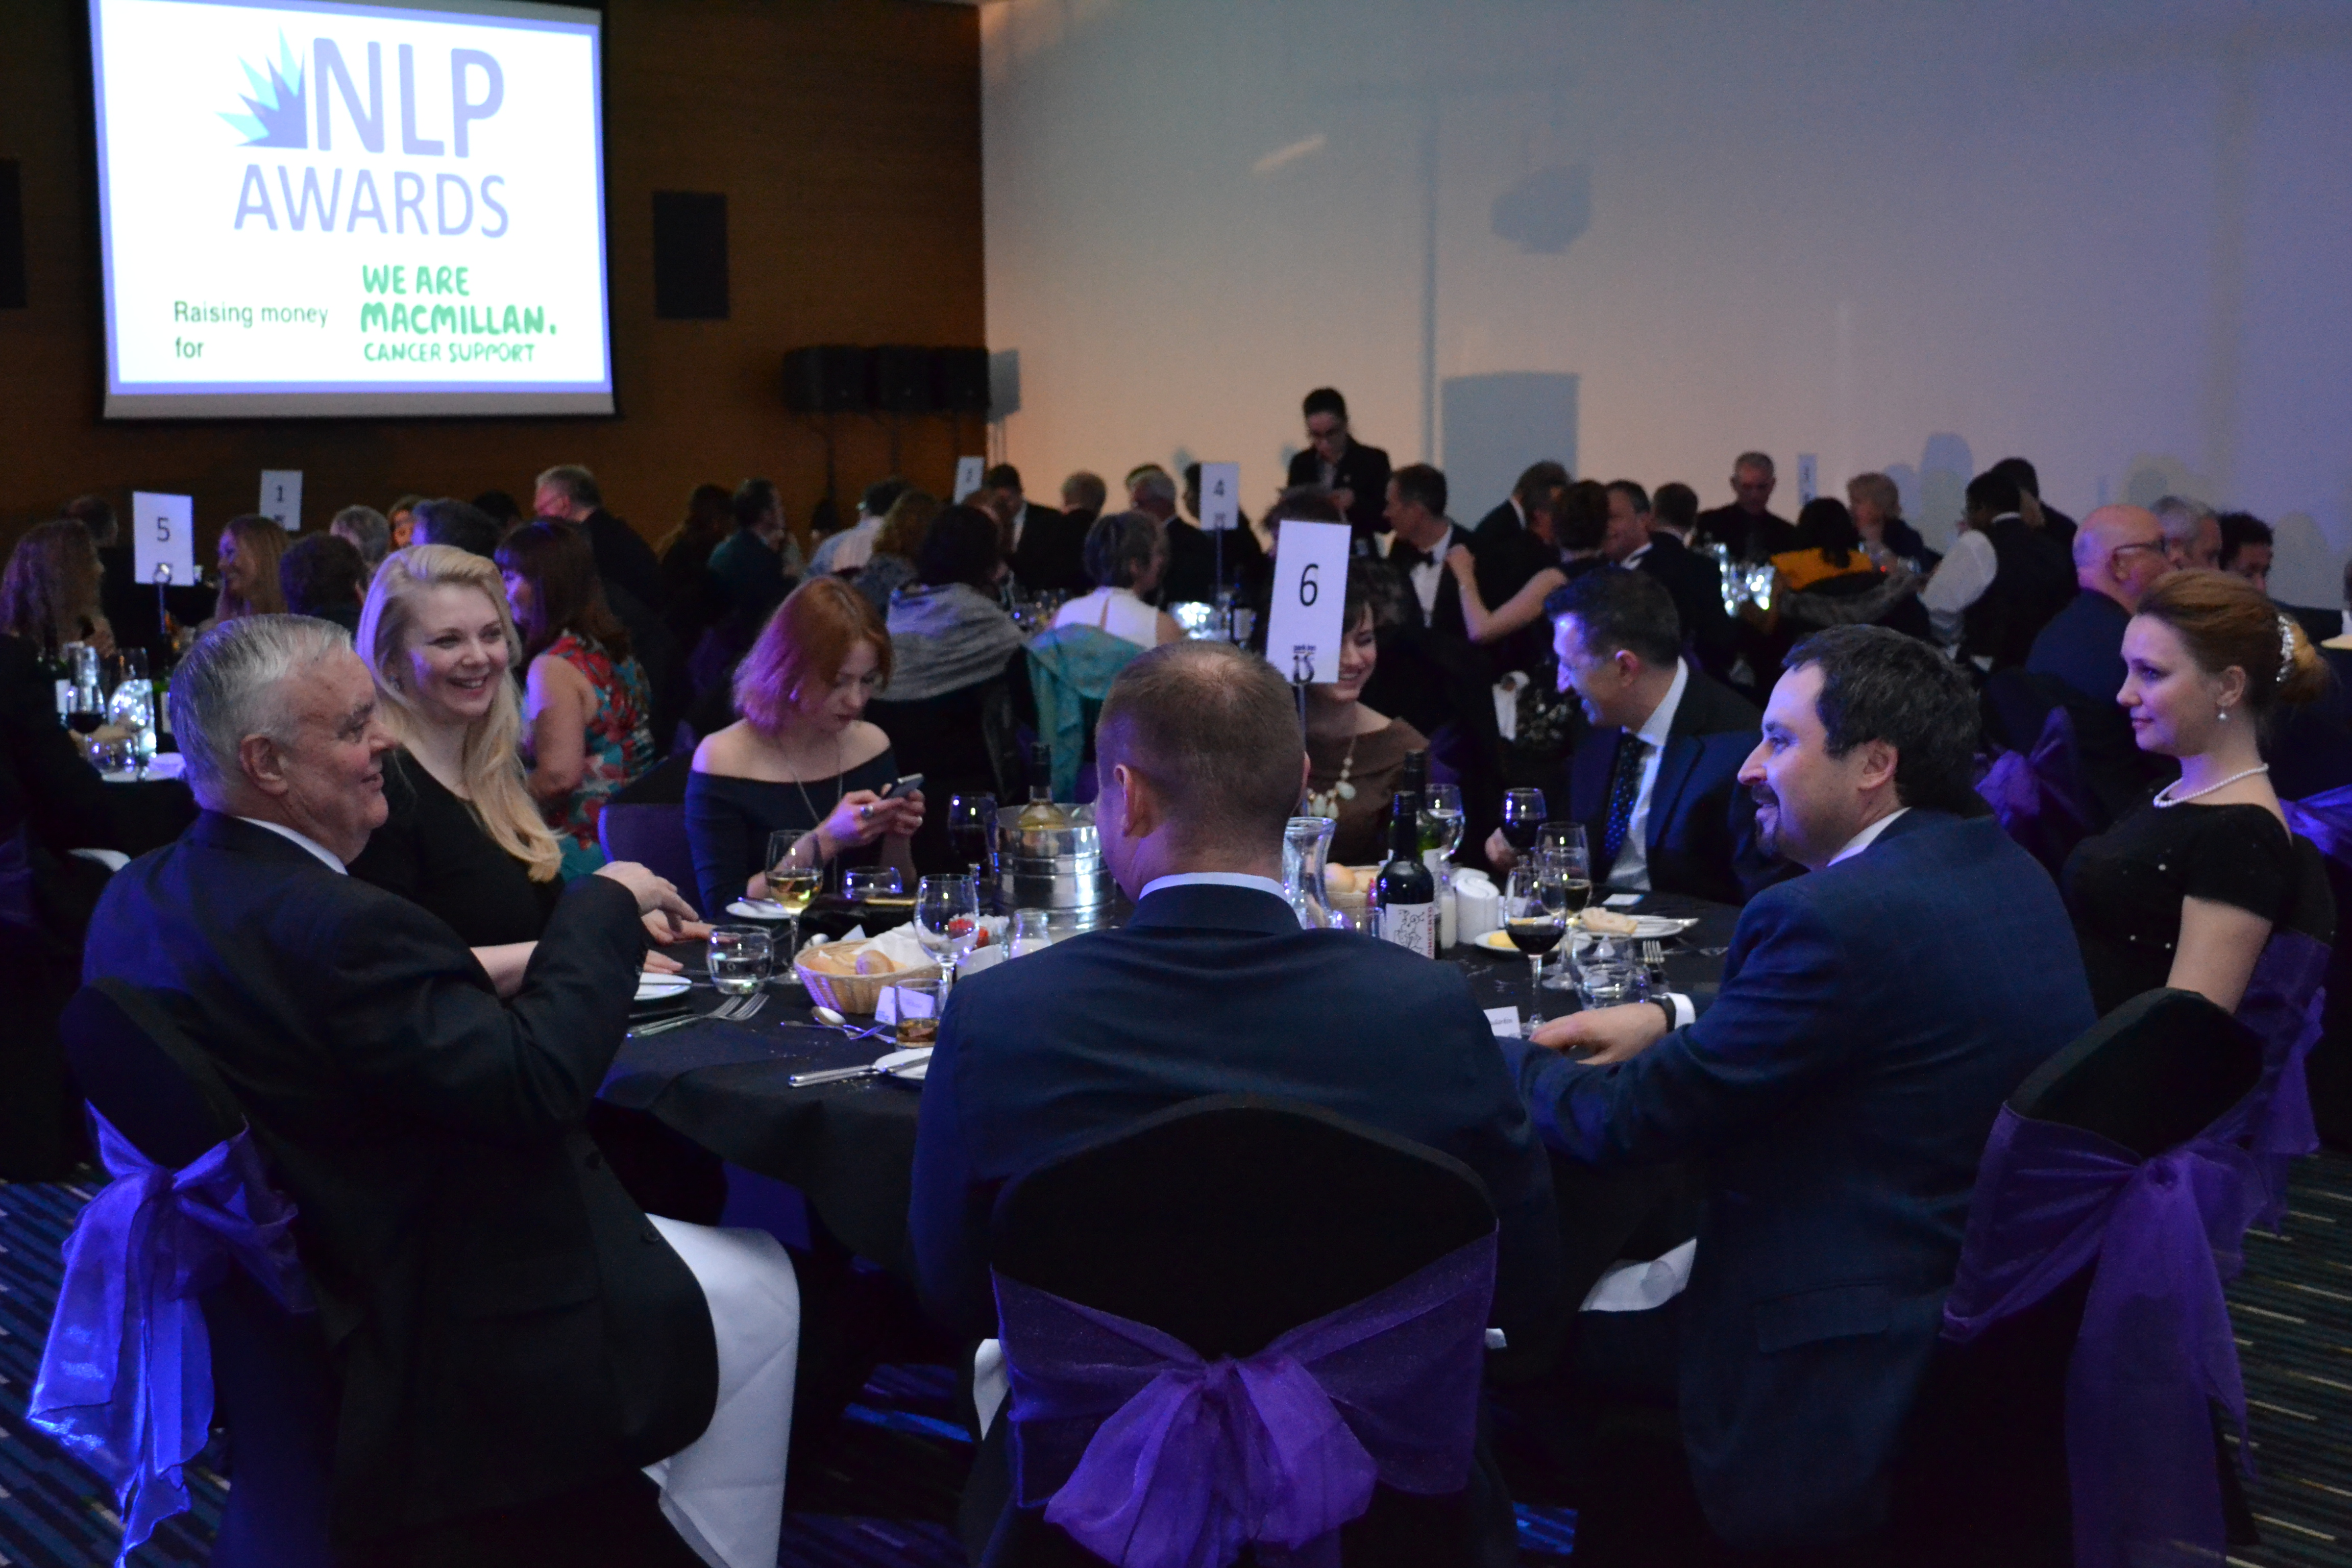 NLP Awards event 2017